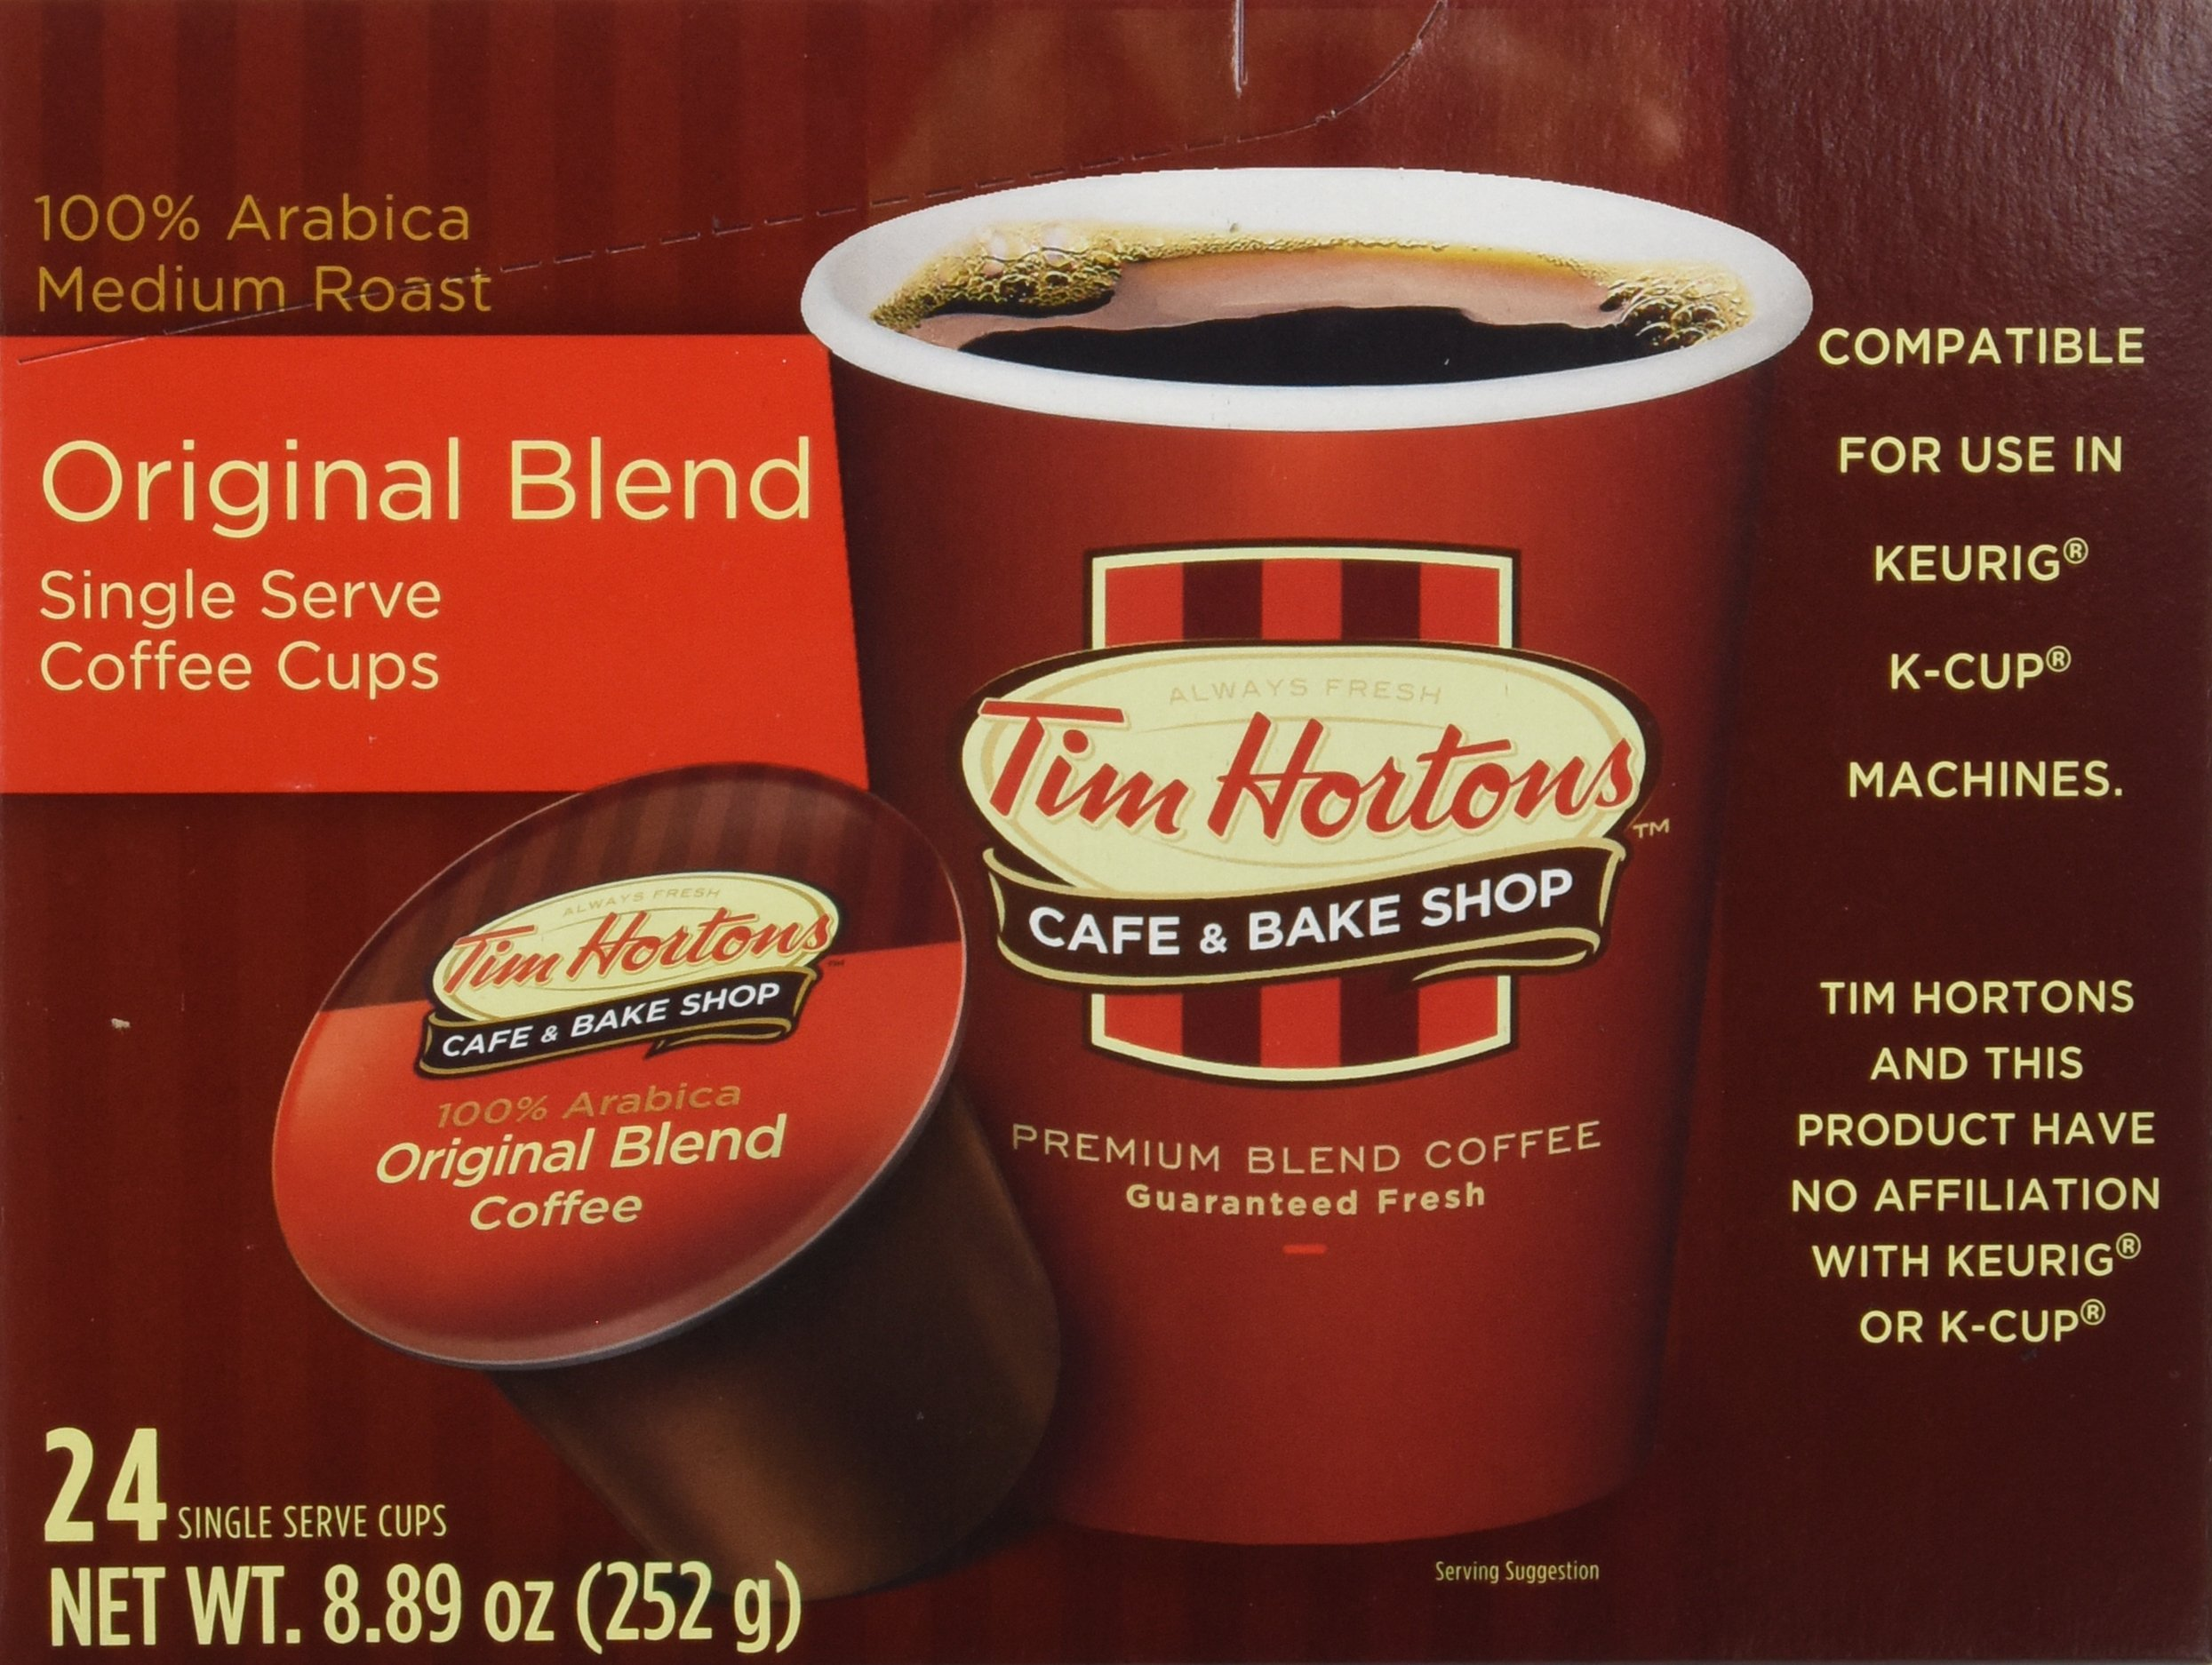 Tim Hortons Single Serve Coffee 96 Count by Tim Hortons